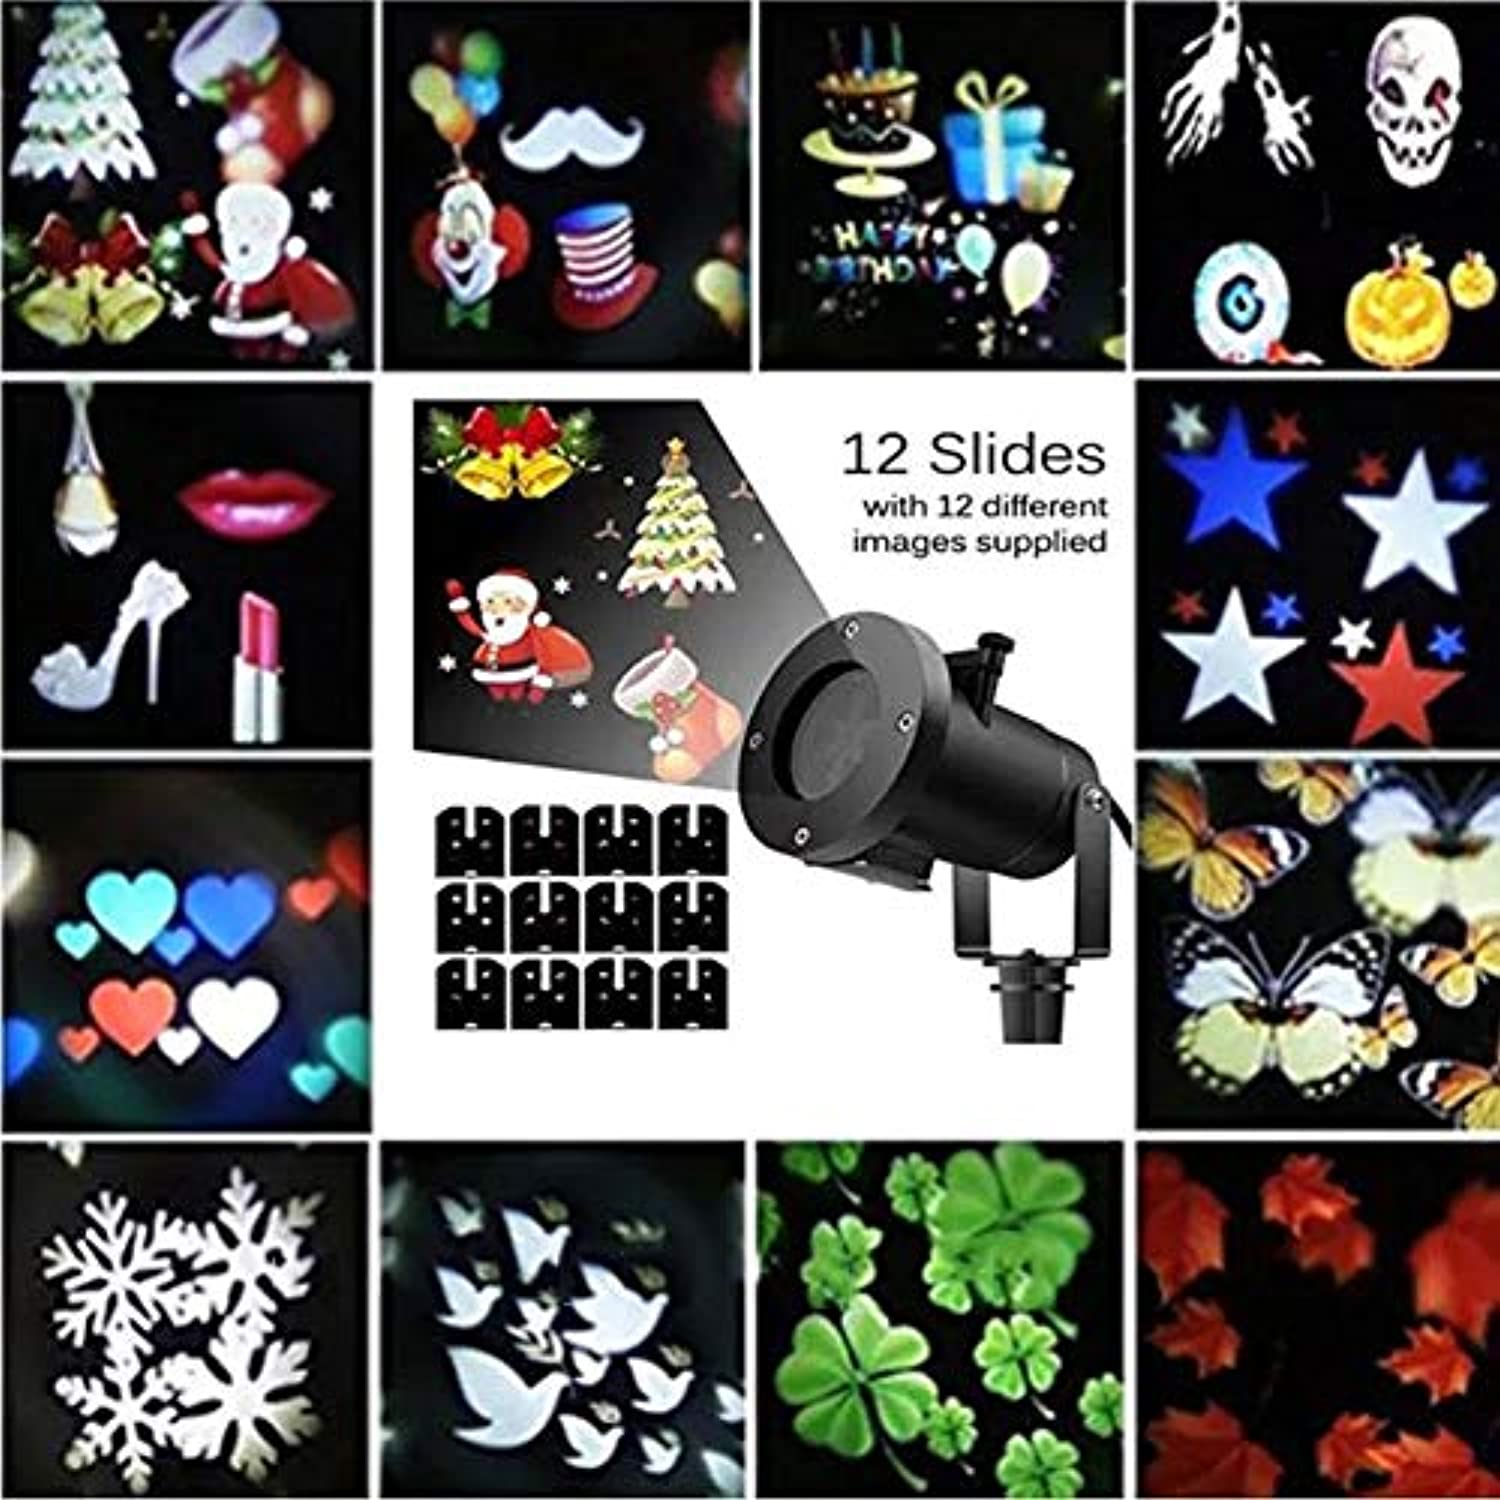 Christmas Halloween Geschenke LED Schneefall Projektor Schneeflocken Lichter Beleuchtet Abnehmbare Outdoor-Wasserdichte Animation Magic 12PCS Umschaltbarer Modus Anime Garden Courtyard Pool